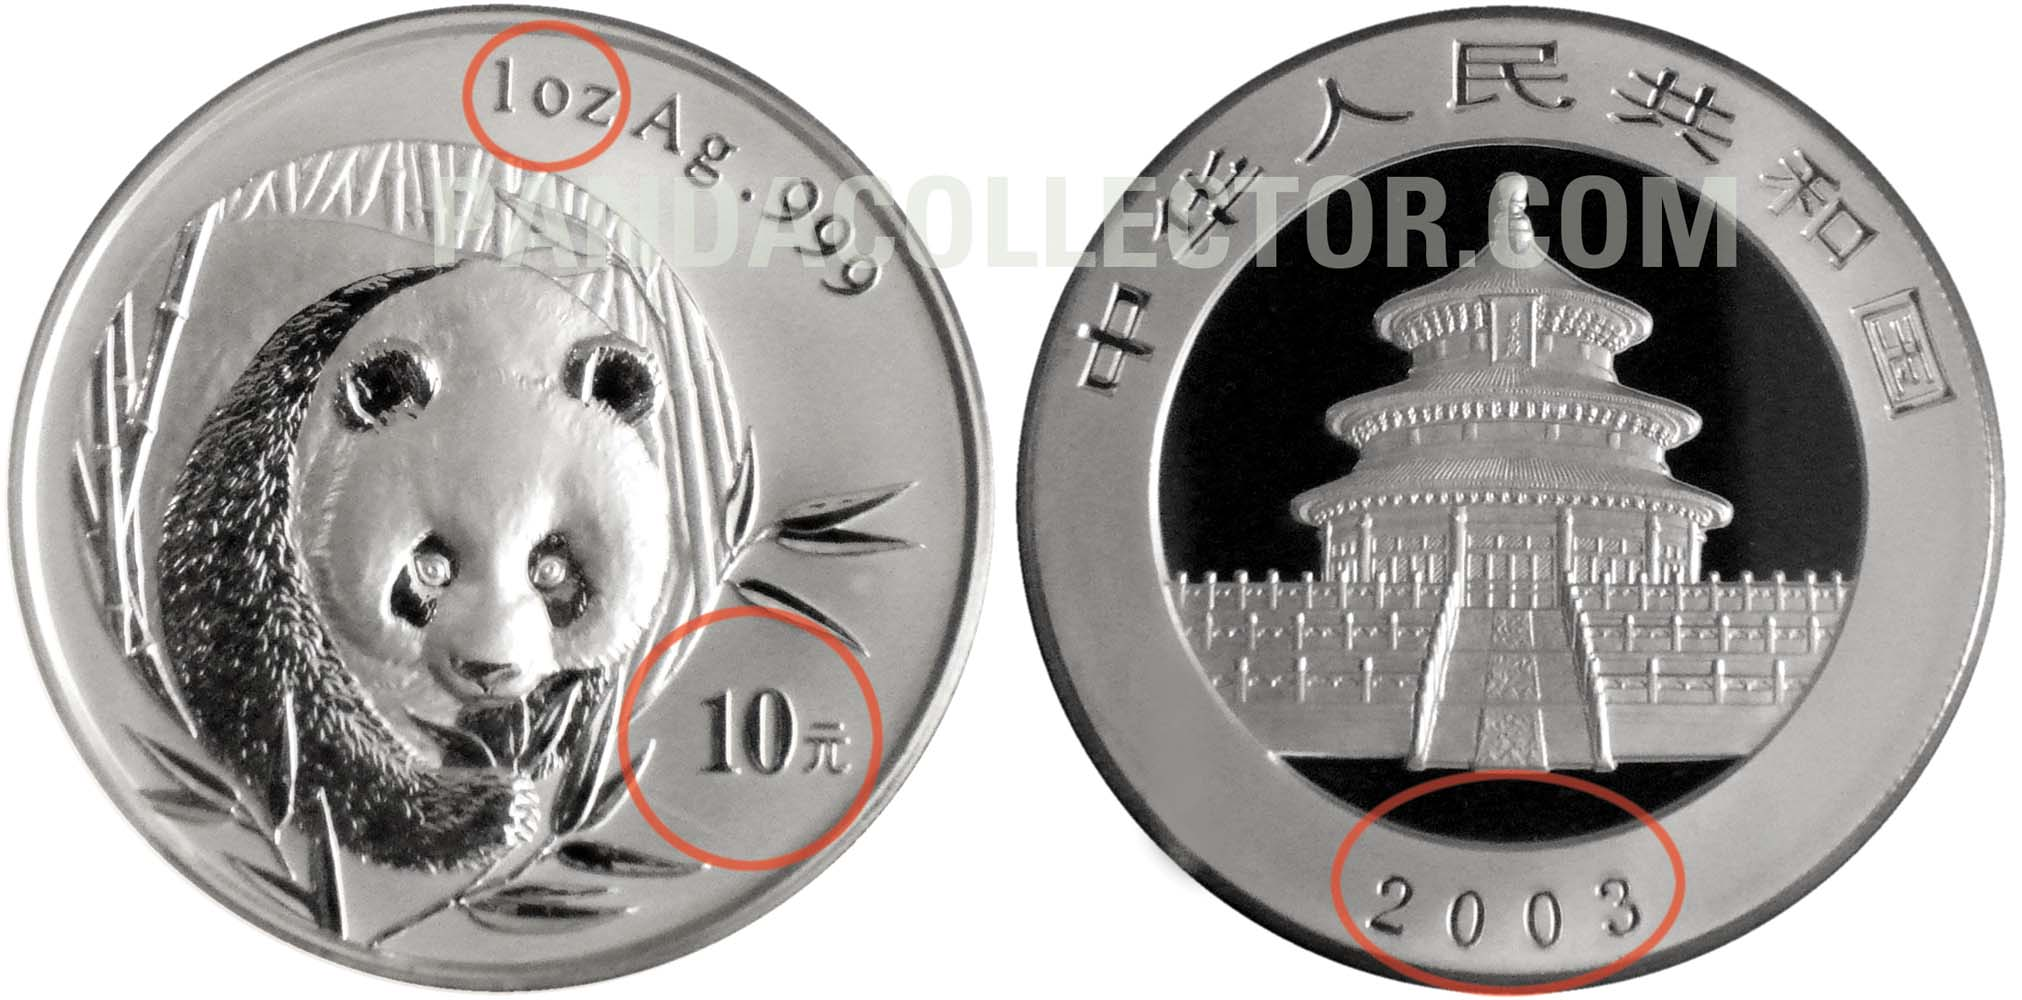 2003 Genuine 1 oz. Silver Panda Example